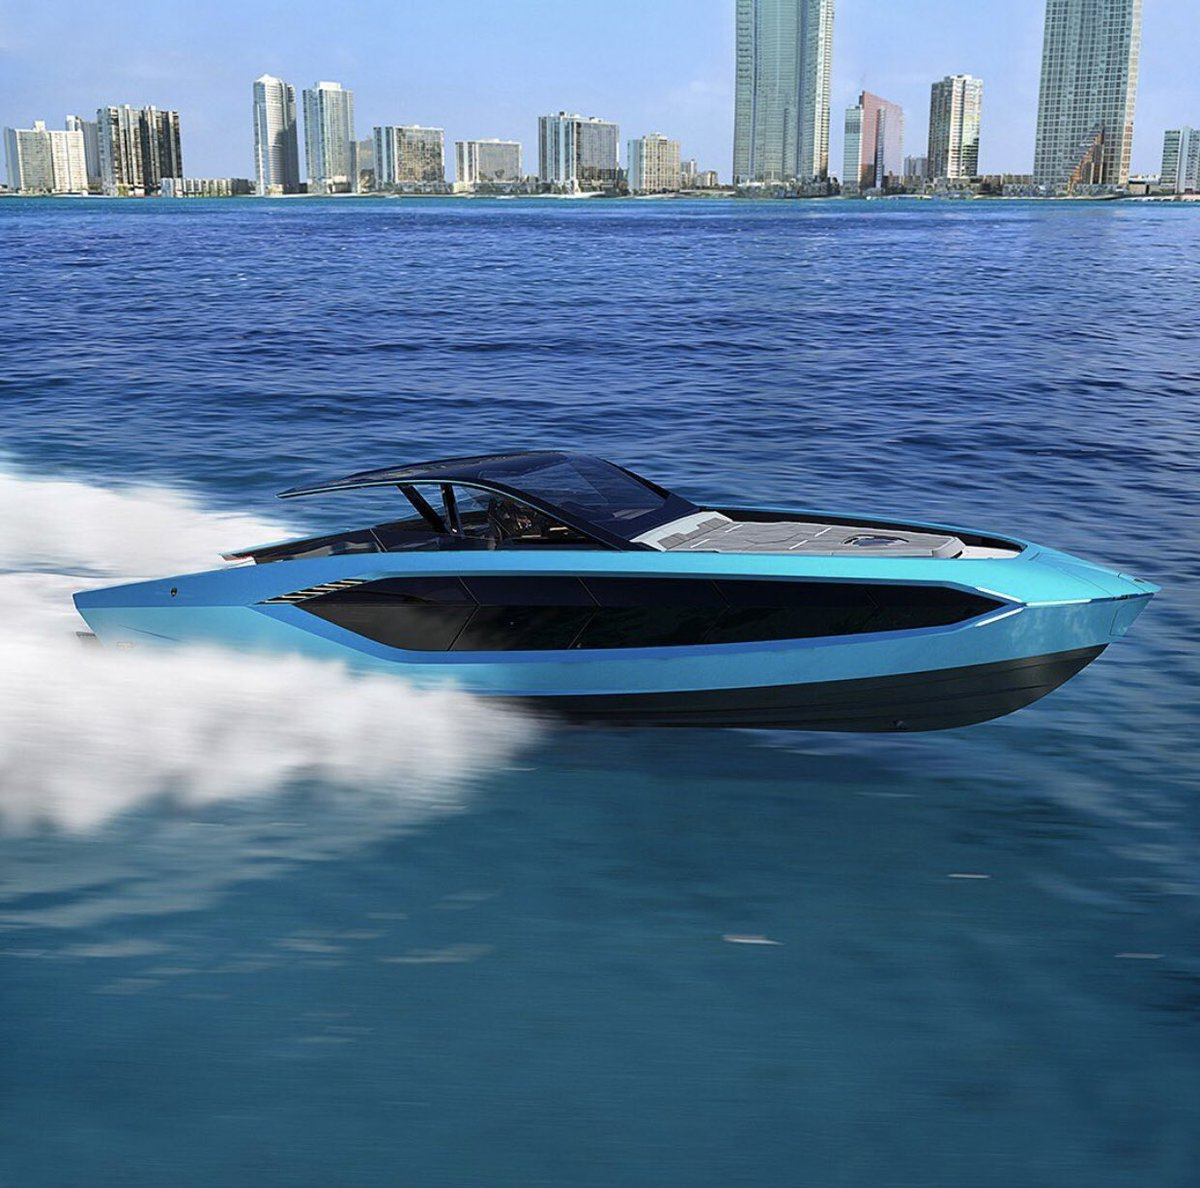 So Lamborghini made a boat, I hate being poor